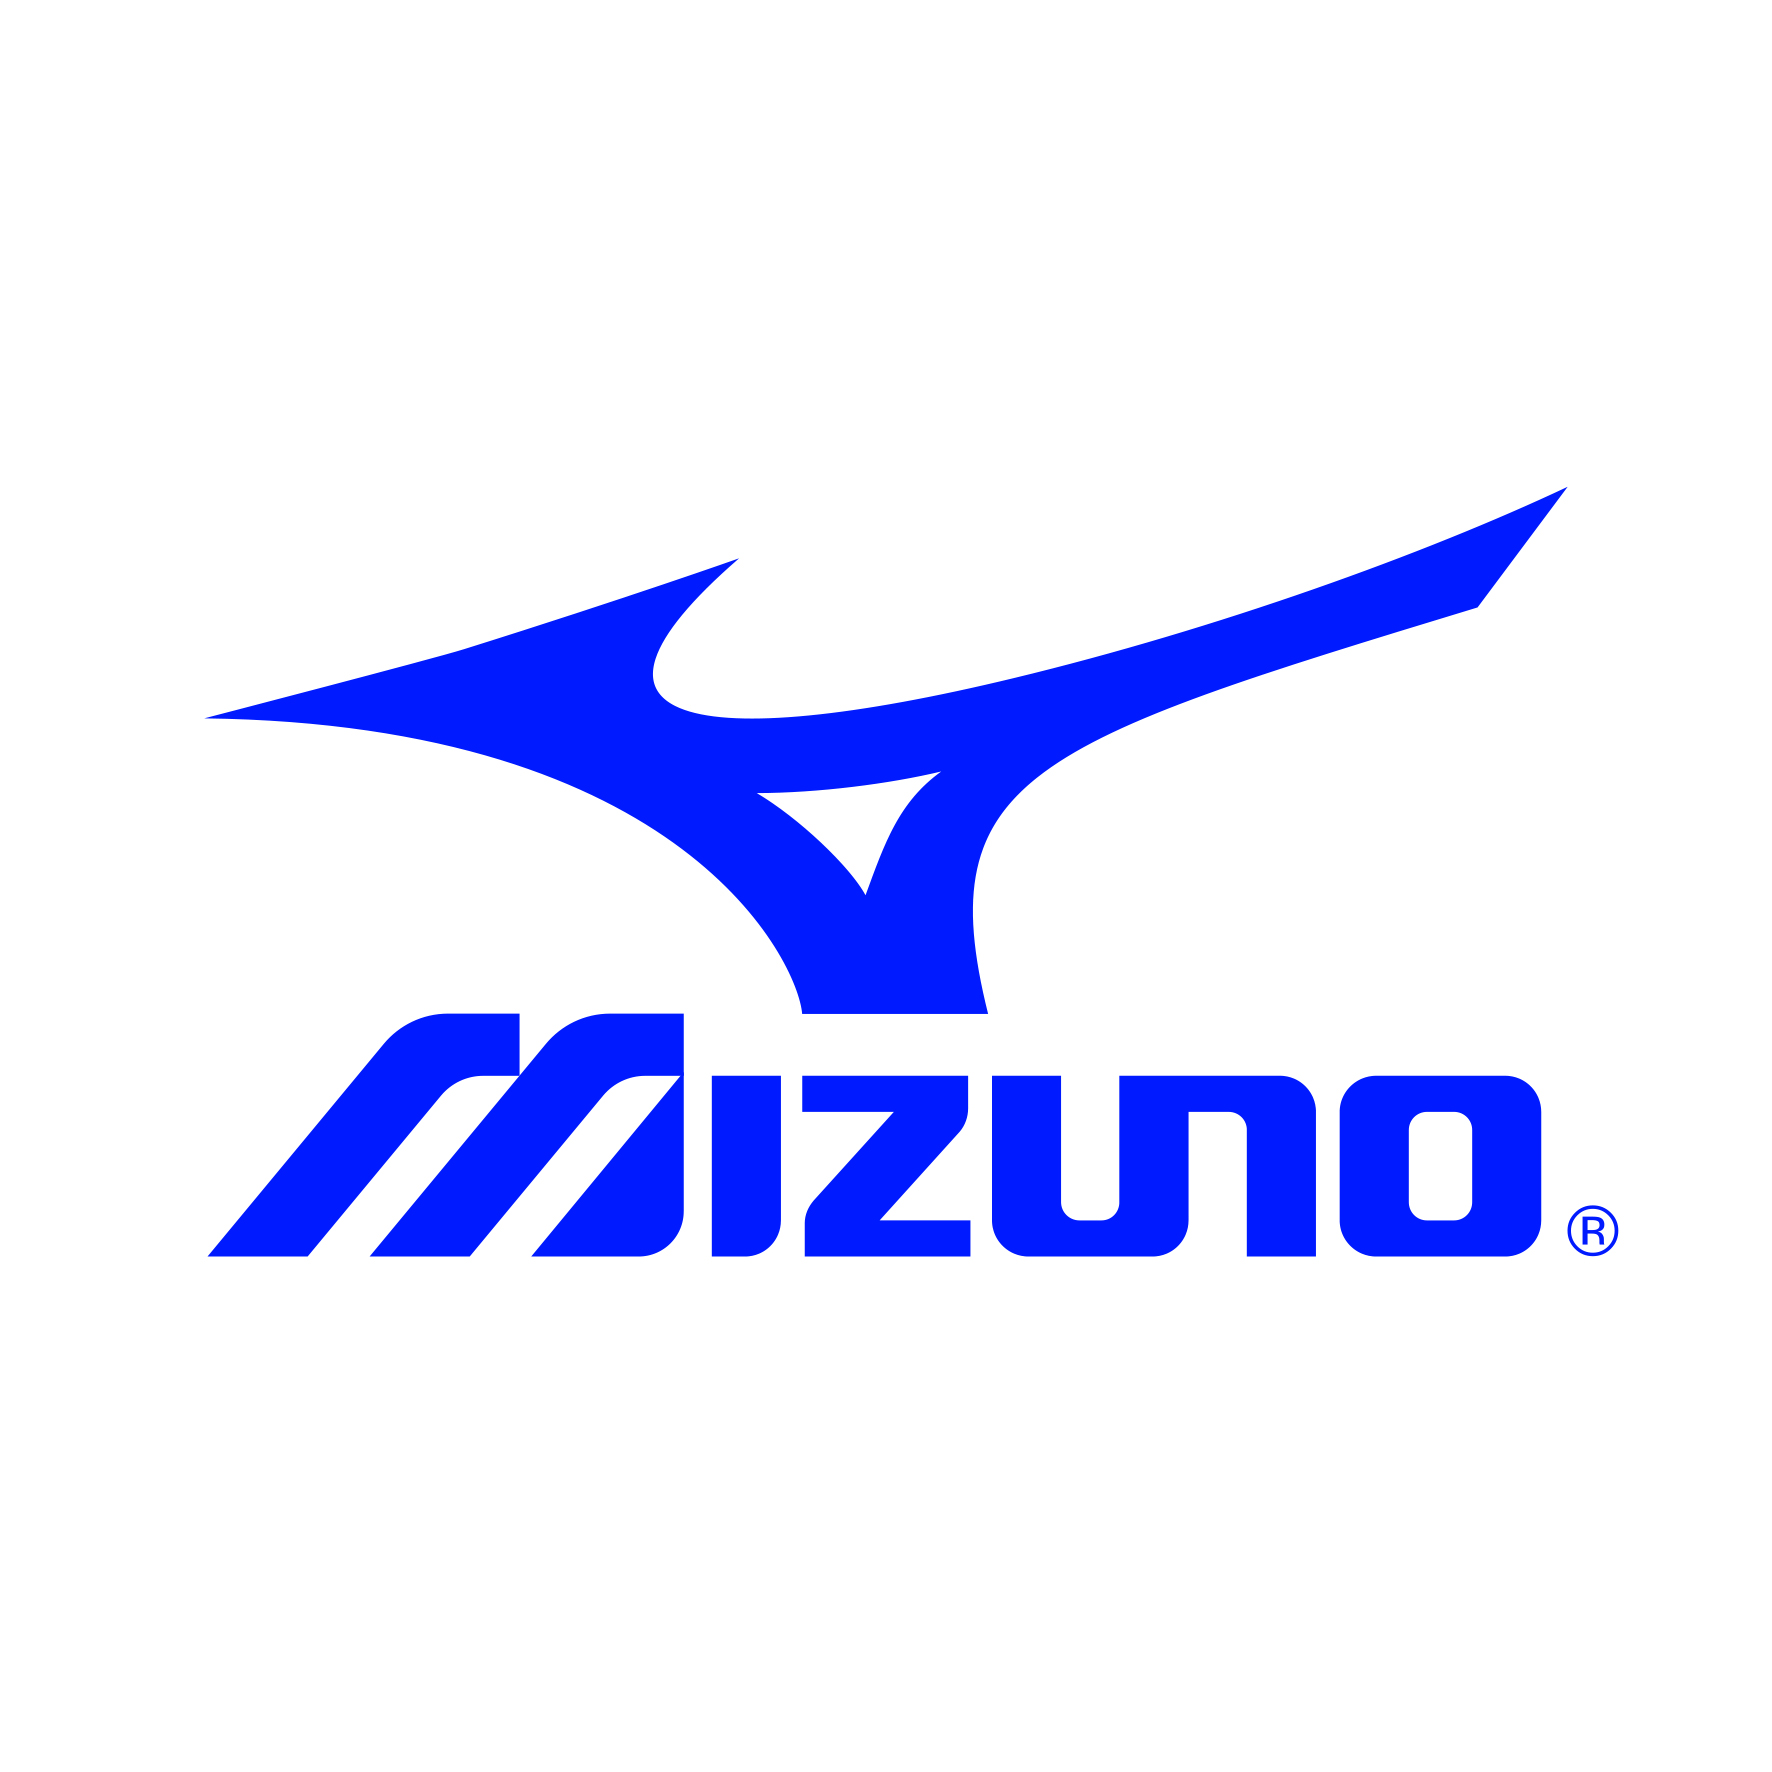 Mizuno's semester boosted by the American region